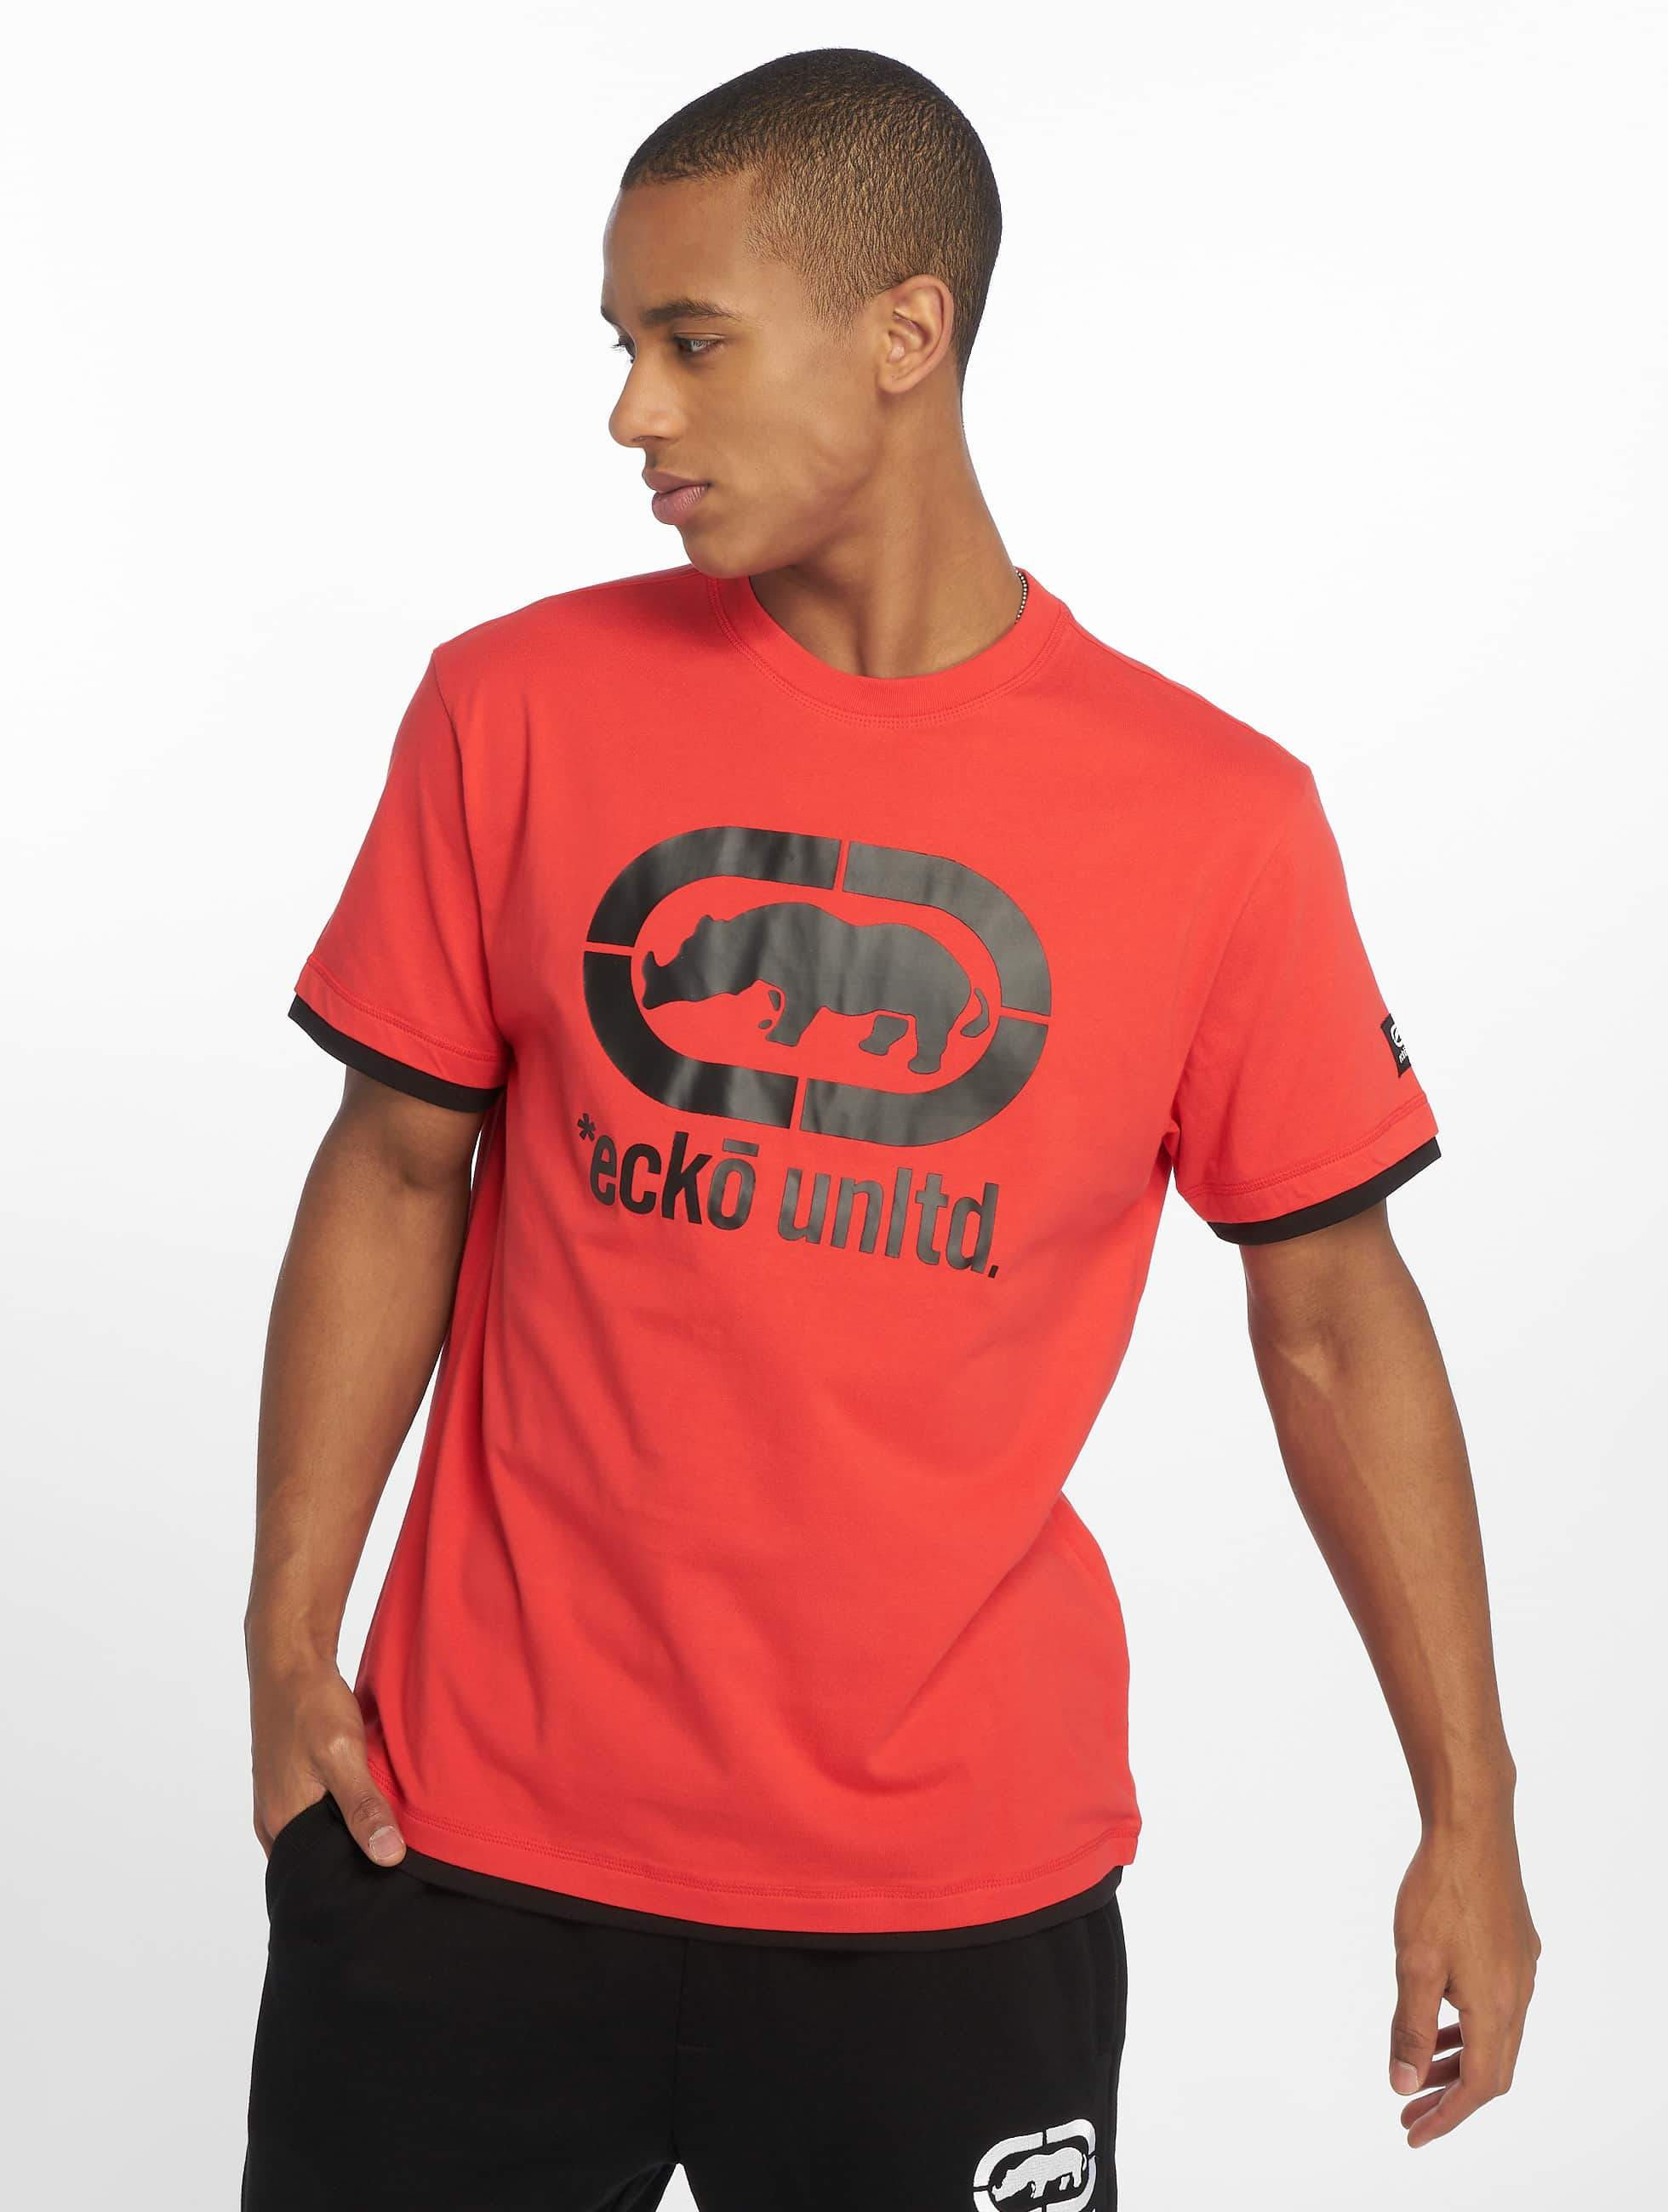 Ecko Unltd. / T-Shirt Best Buddy in red S